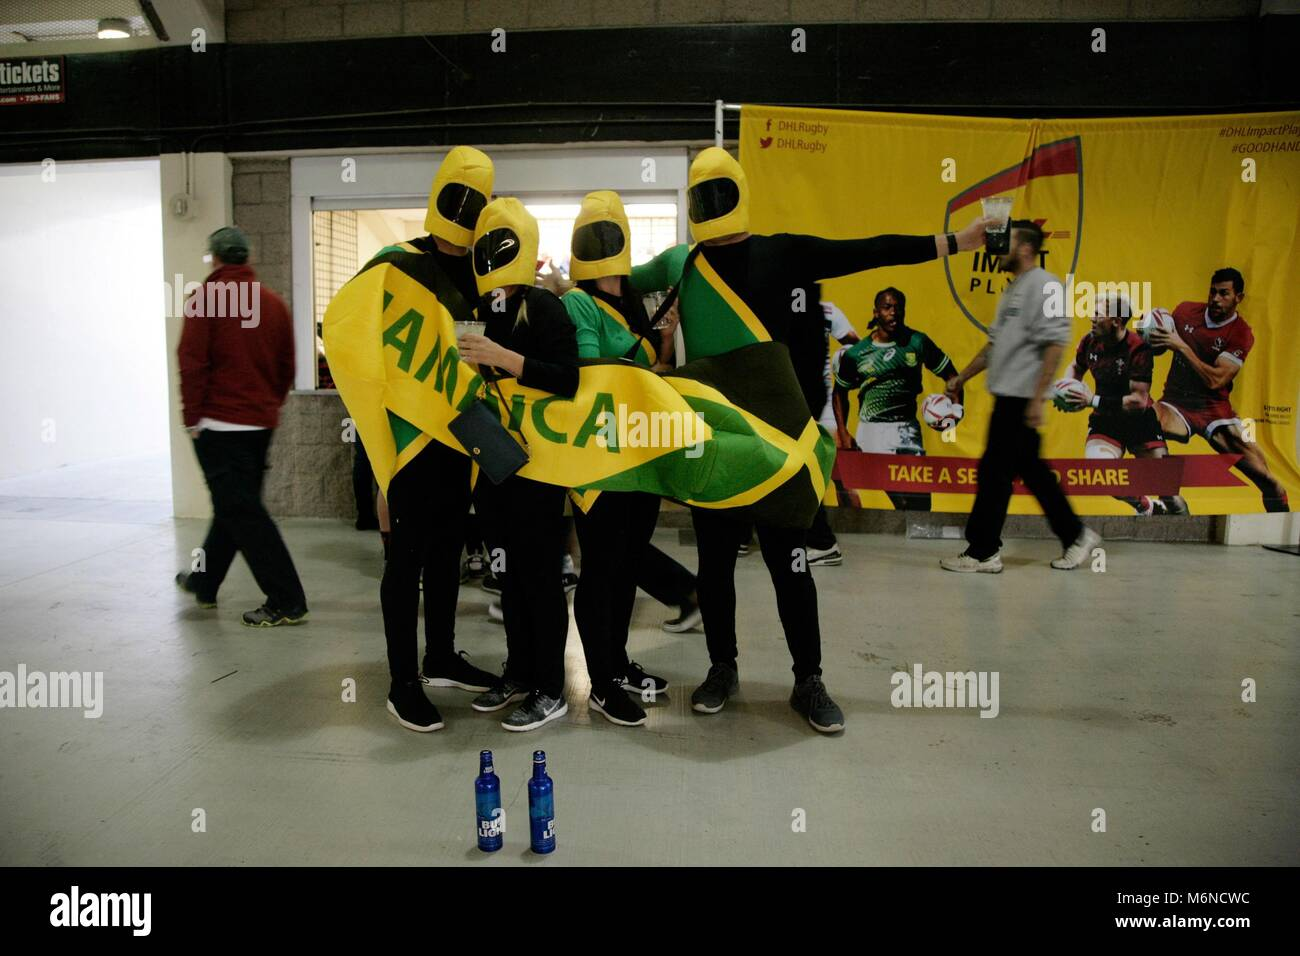 Jamaican Bobsled Team High Resolution Stock Photography And Images Alamy